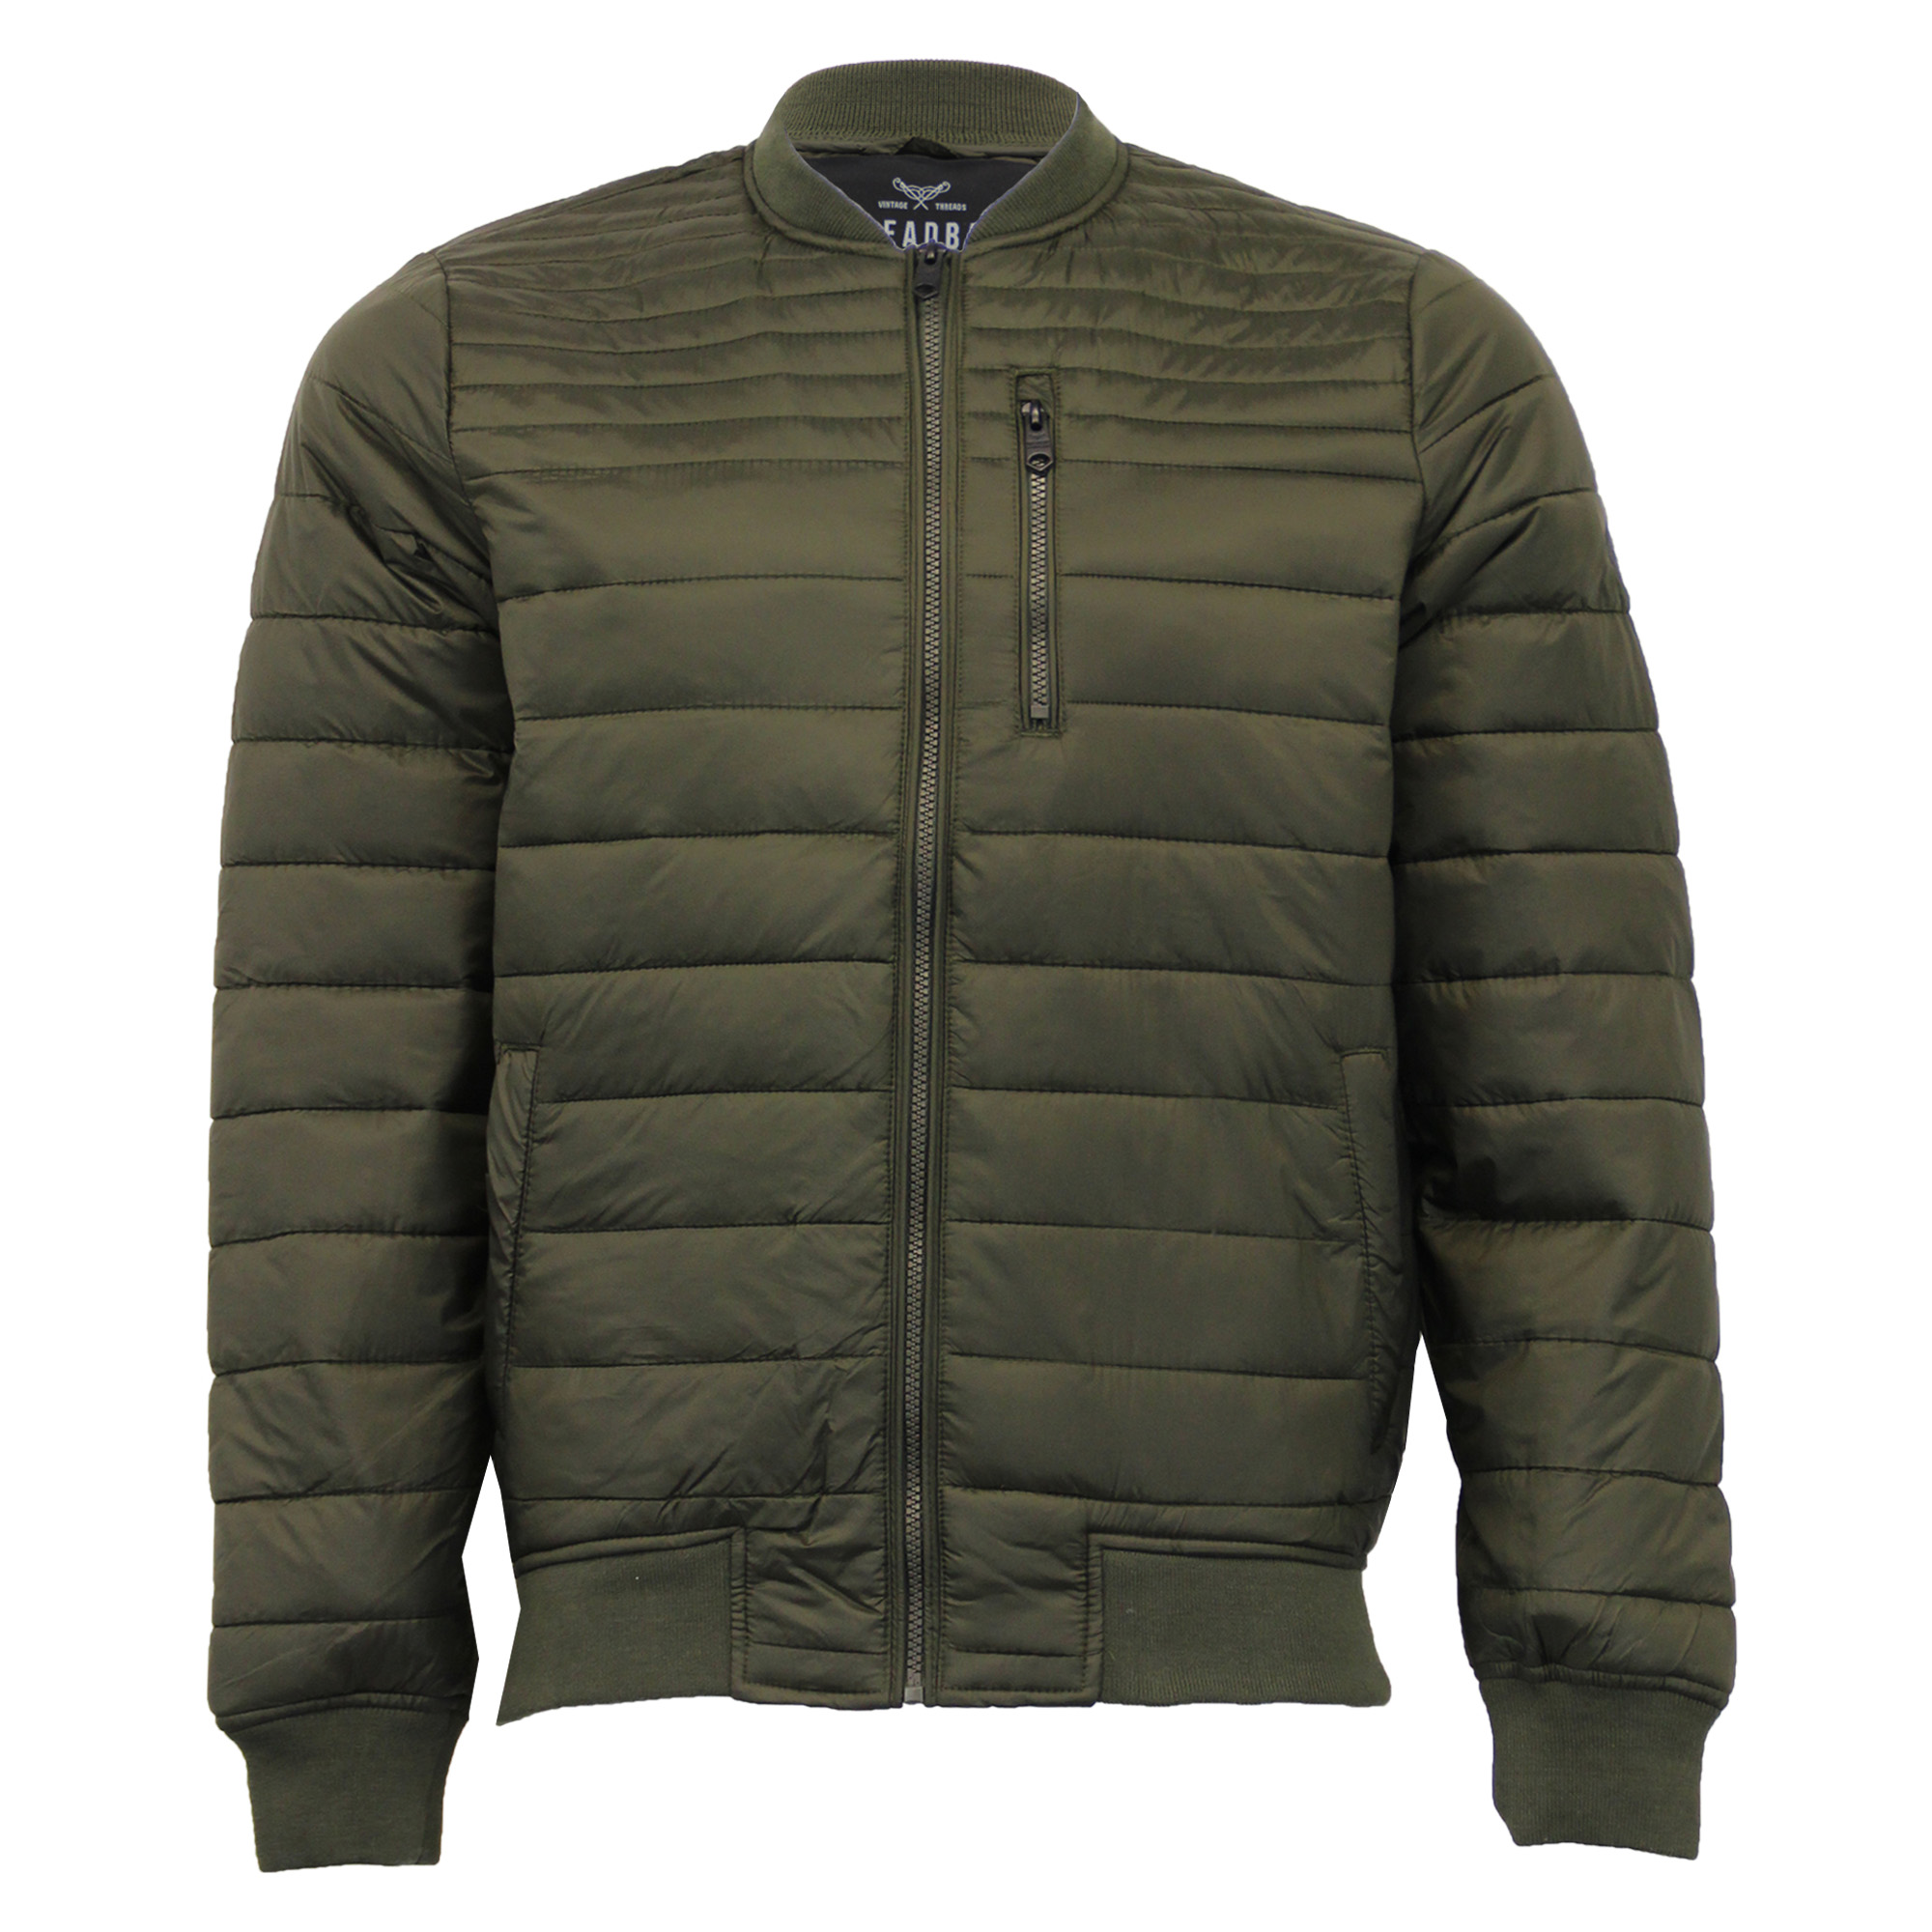 The bomber jacket, one of the classic men fashion items, comes back in style in Luxury brands such as Gucci, Hugo Boss, and Club Monaco have all turned their attention to renewing their men's jacket collections with a new twist.